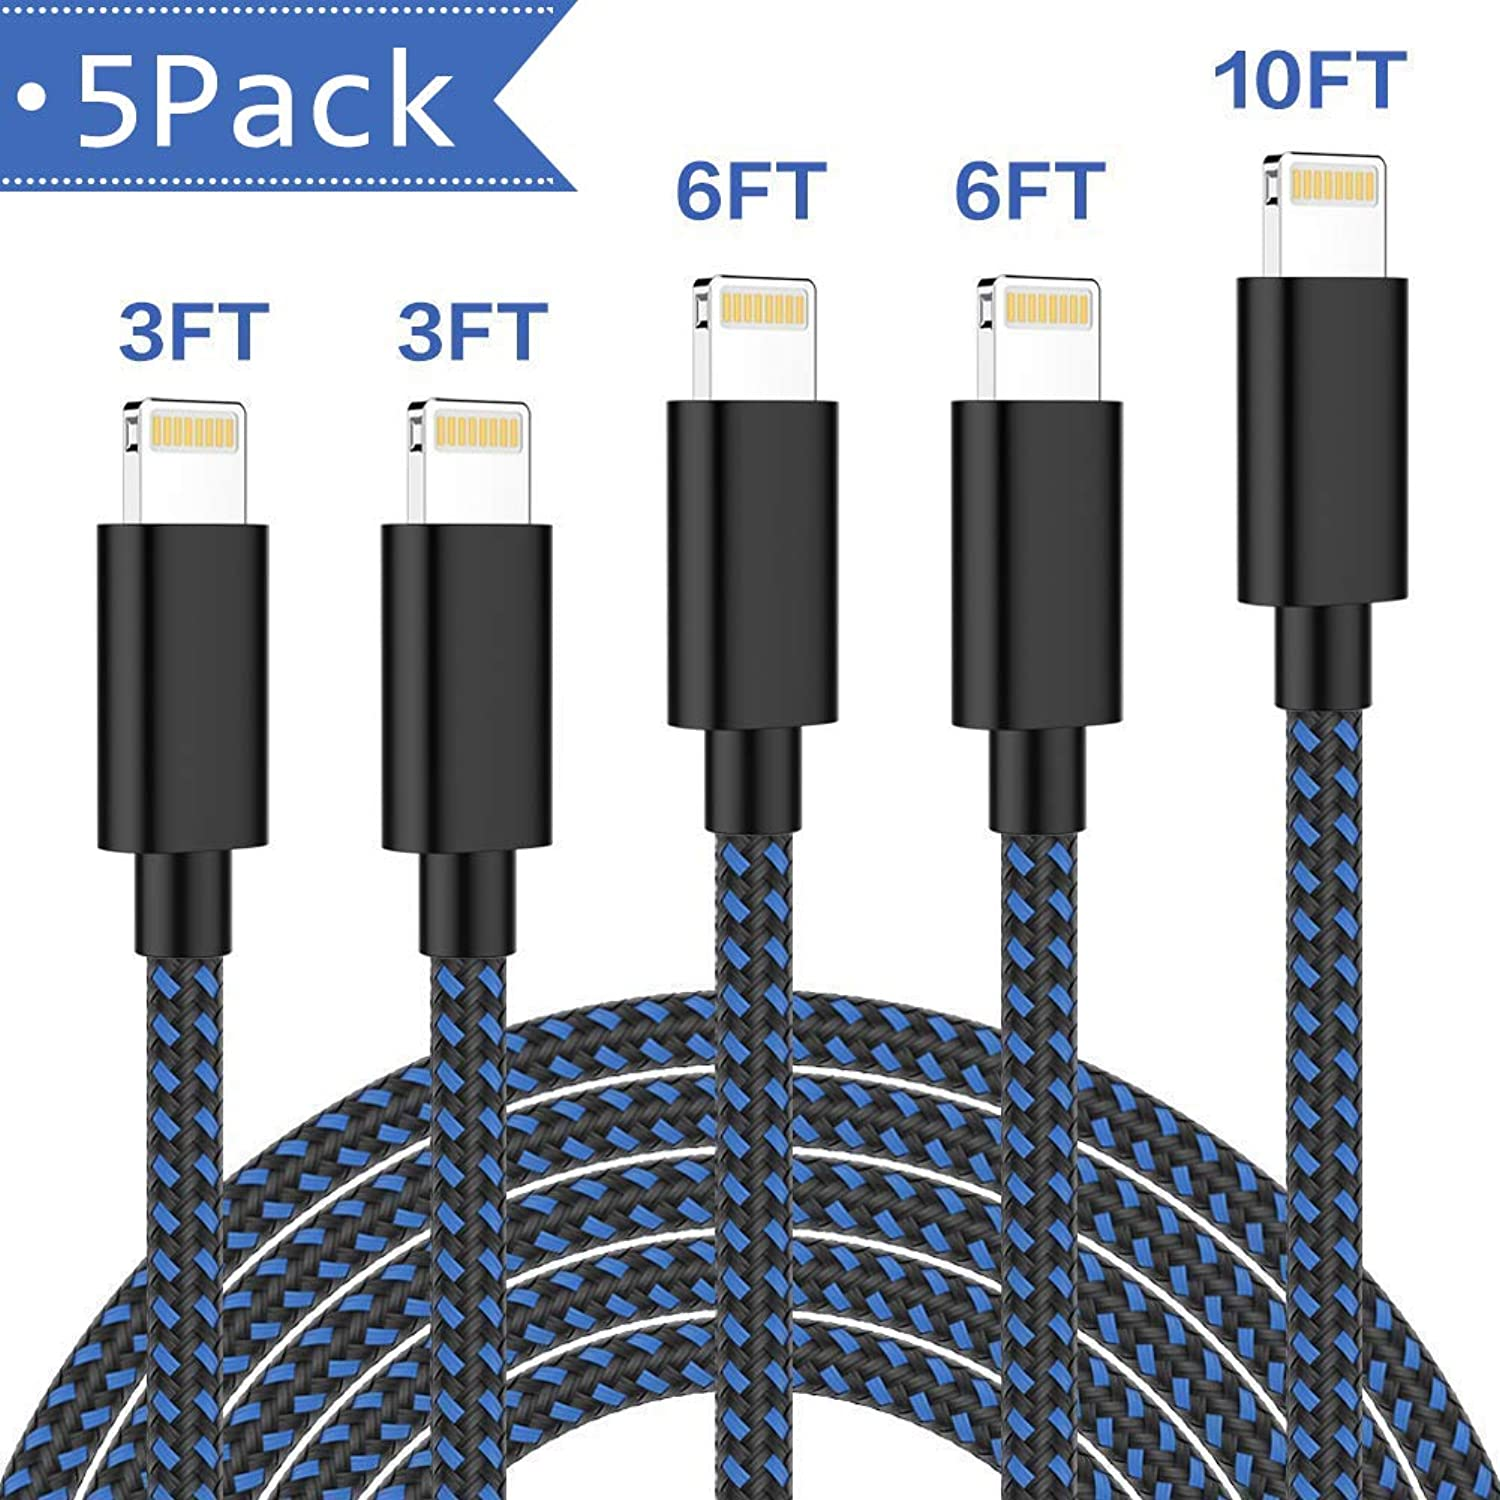 iPhone Charger,TNSO MFi Certified Lightning Cable 5 Pack [3/3/6/6/10FT] Extra Long Nylon Braided USB Charging & Syncing Cord Compatible iPhone Xs/Max/XR/X/8/8Plus/7/7Plus/6S/6S Plus/SE/iPad/Nan More